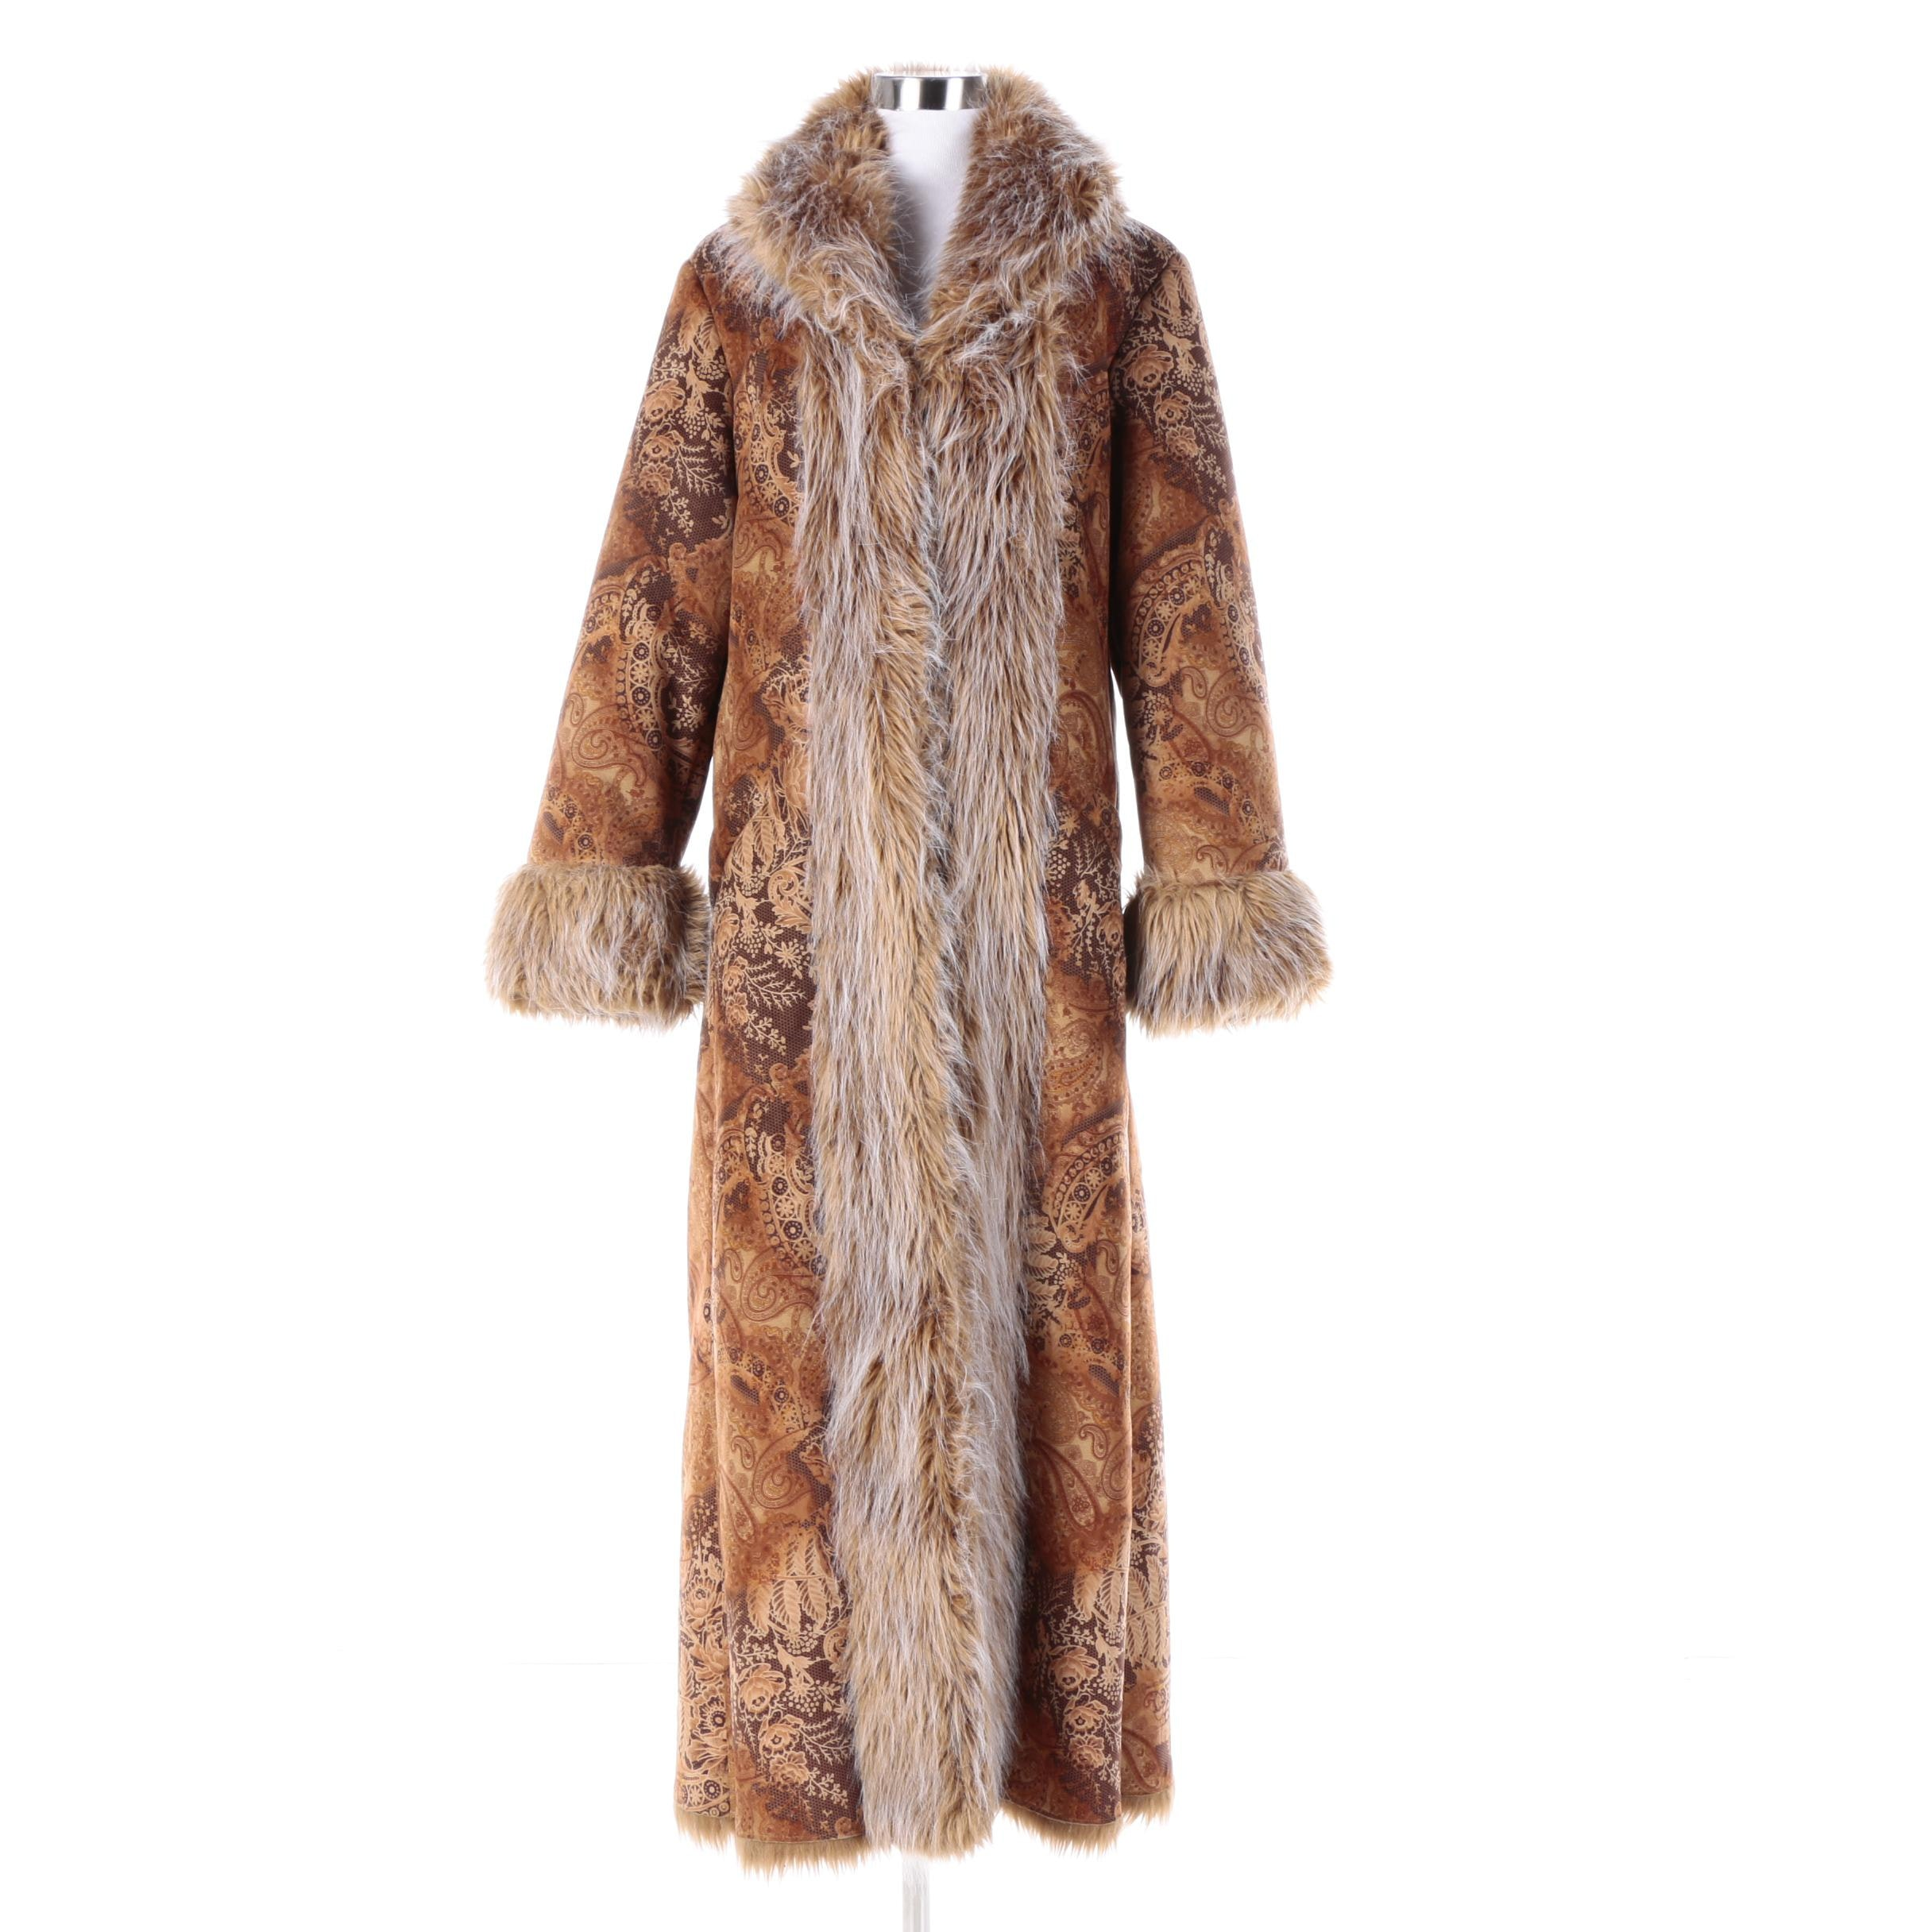 Women's Newport News Paisley Print Coat with Faux Fur Trim